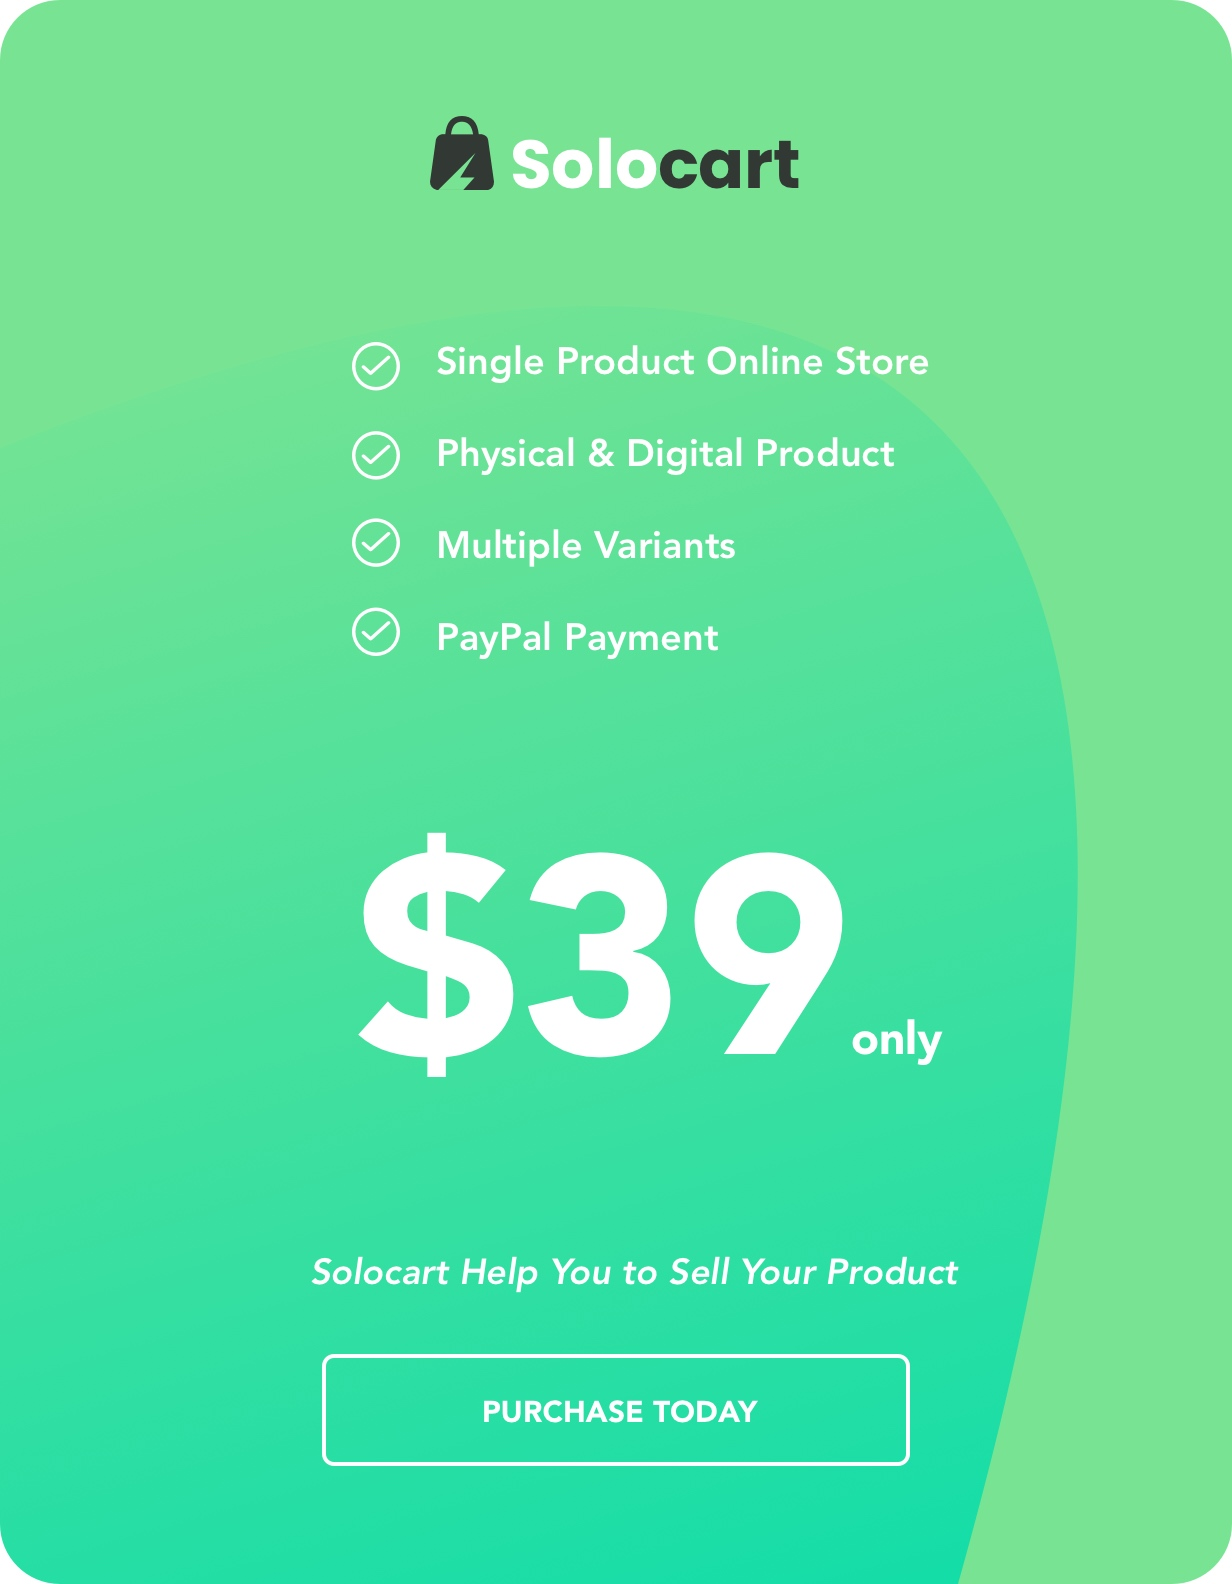 Solocart - Single Product (Physical & Digital) Ecommerce Online Store Web App - 1